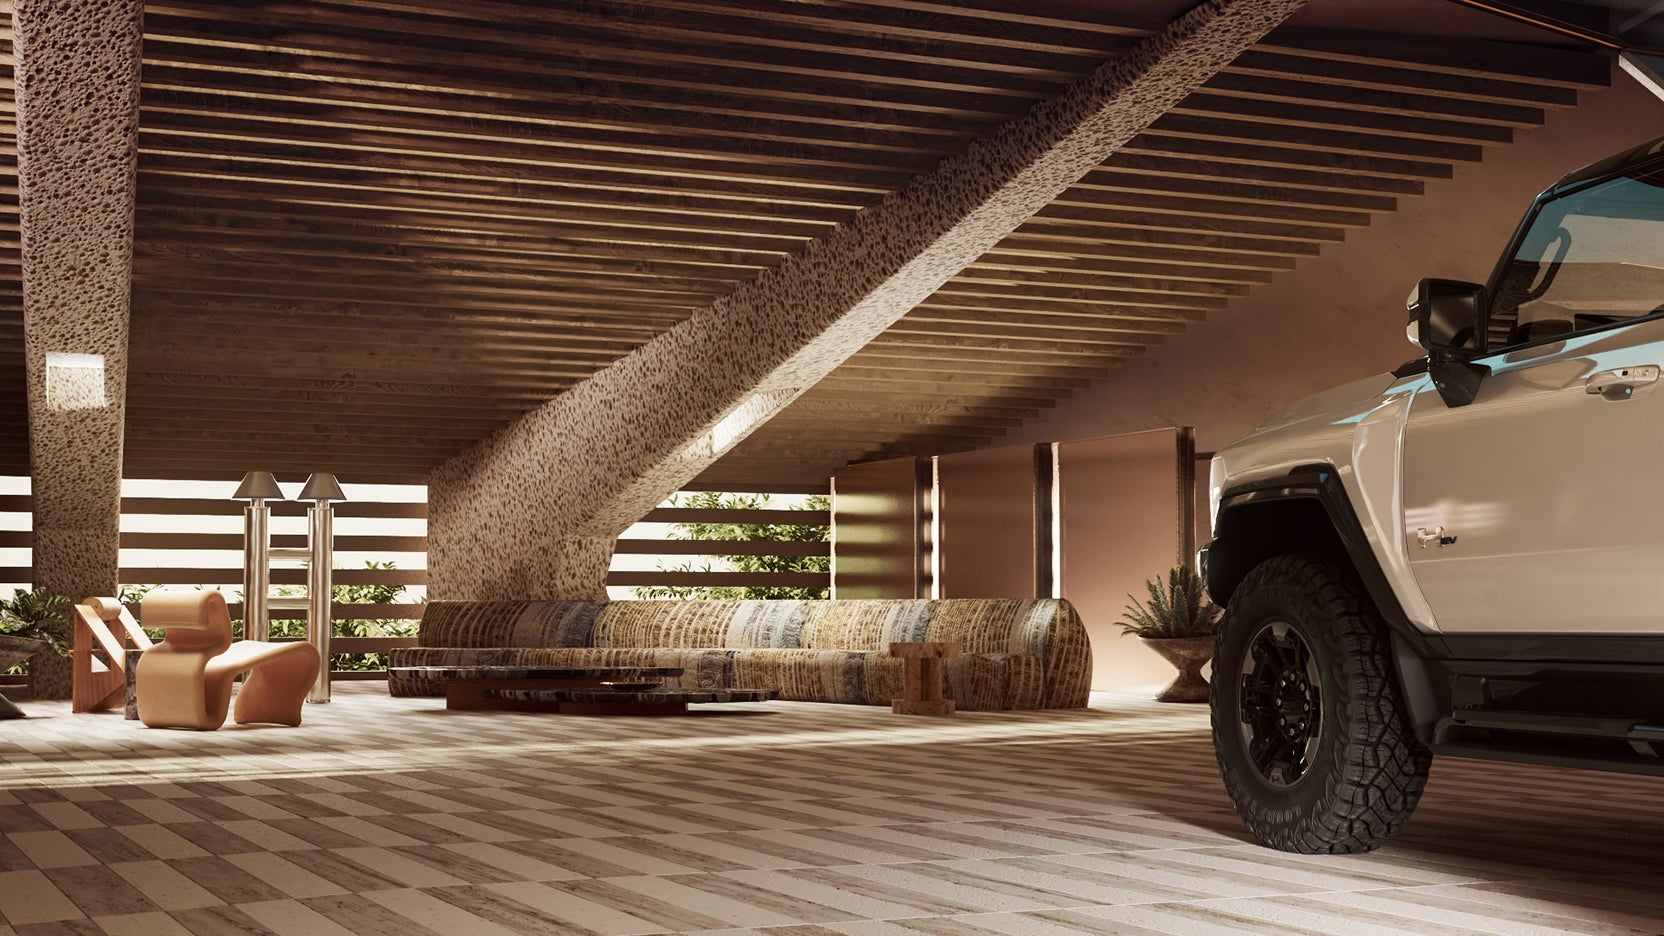 car parked in roofed garage